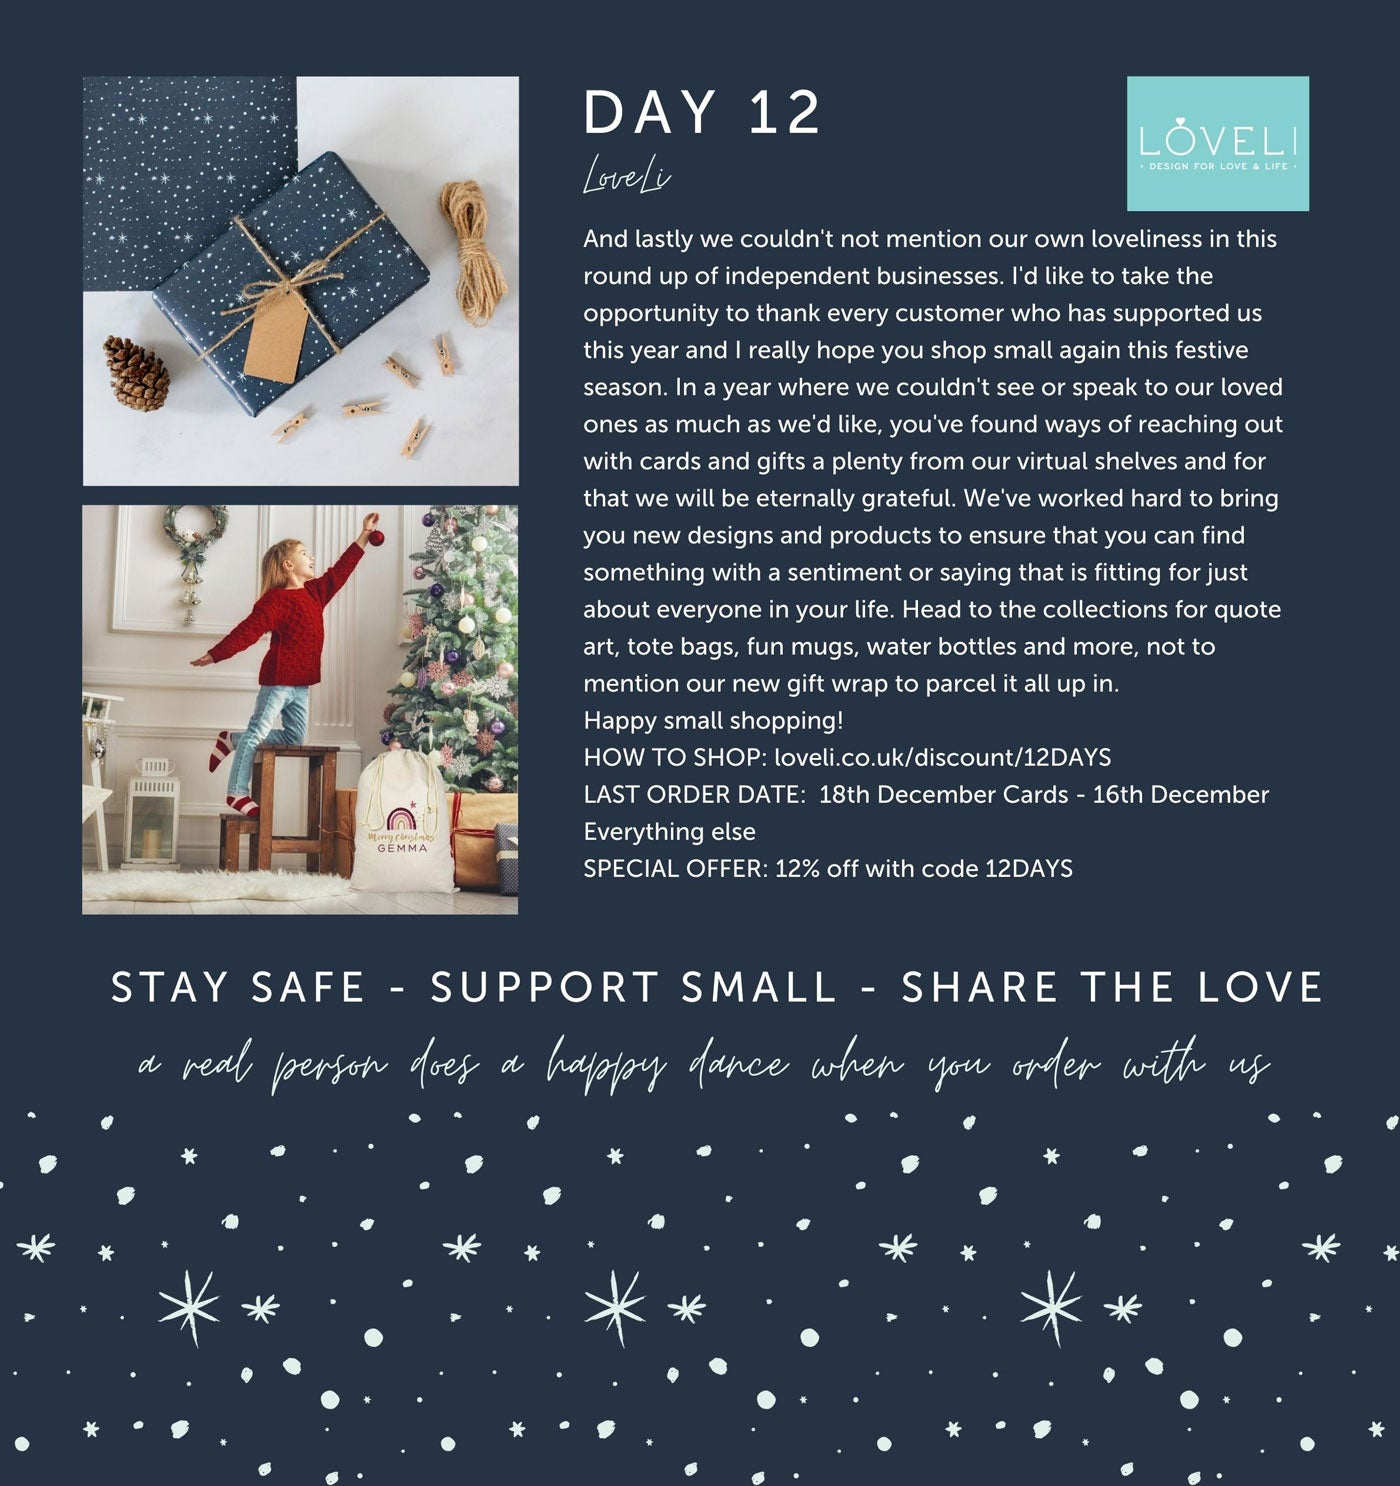 Day 12 - LoveLi - And lastly we couldn't not mention our own loveliness in this round up of independent businesses. I'd like to take the opportunity to thank every customer who has supported us this year and I really hope you shop small again this festive season. In a year where we couldn't see or speak to our loved ones as much as we'd like, you've found ways of reaching out with cards and gifts a plenty from our virtual shelves and for that we will be eternally grateful. We've worked hard to bring you new designs and products to ensure that you can find something with a sentiment or saying that is fitting for just about everyone in your life. Head to the collections for quote art, tote bags, fun mugs, water bottles and more, not to mention our new gift wrap to parcel it all up in.   Happy small shopping! HOW TO SHOP: loveli.co.uk/discount/12DAYS LAST ORDER DATE:  18th December Cards - 16th December Everything else SPECIAL OFFER: 12% off with code 12DAYS | STAY SAFE - SUPPORT SMALL - SHARE THE LOVE